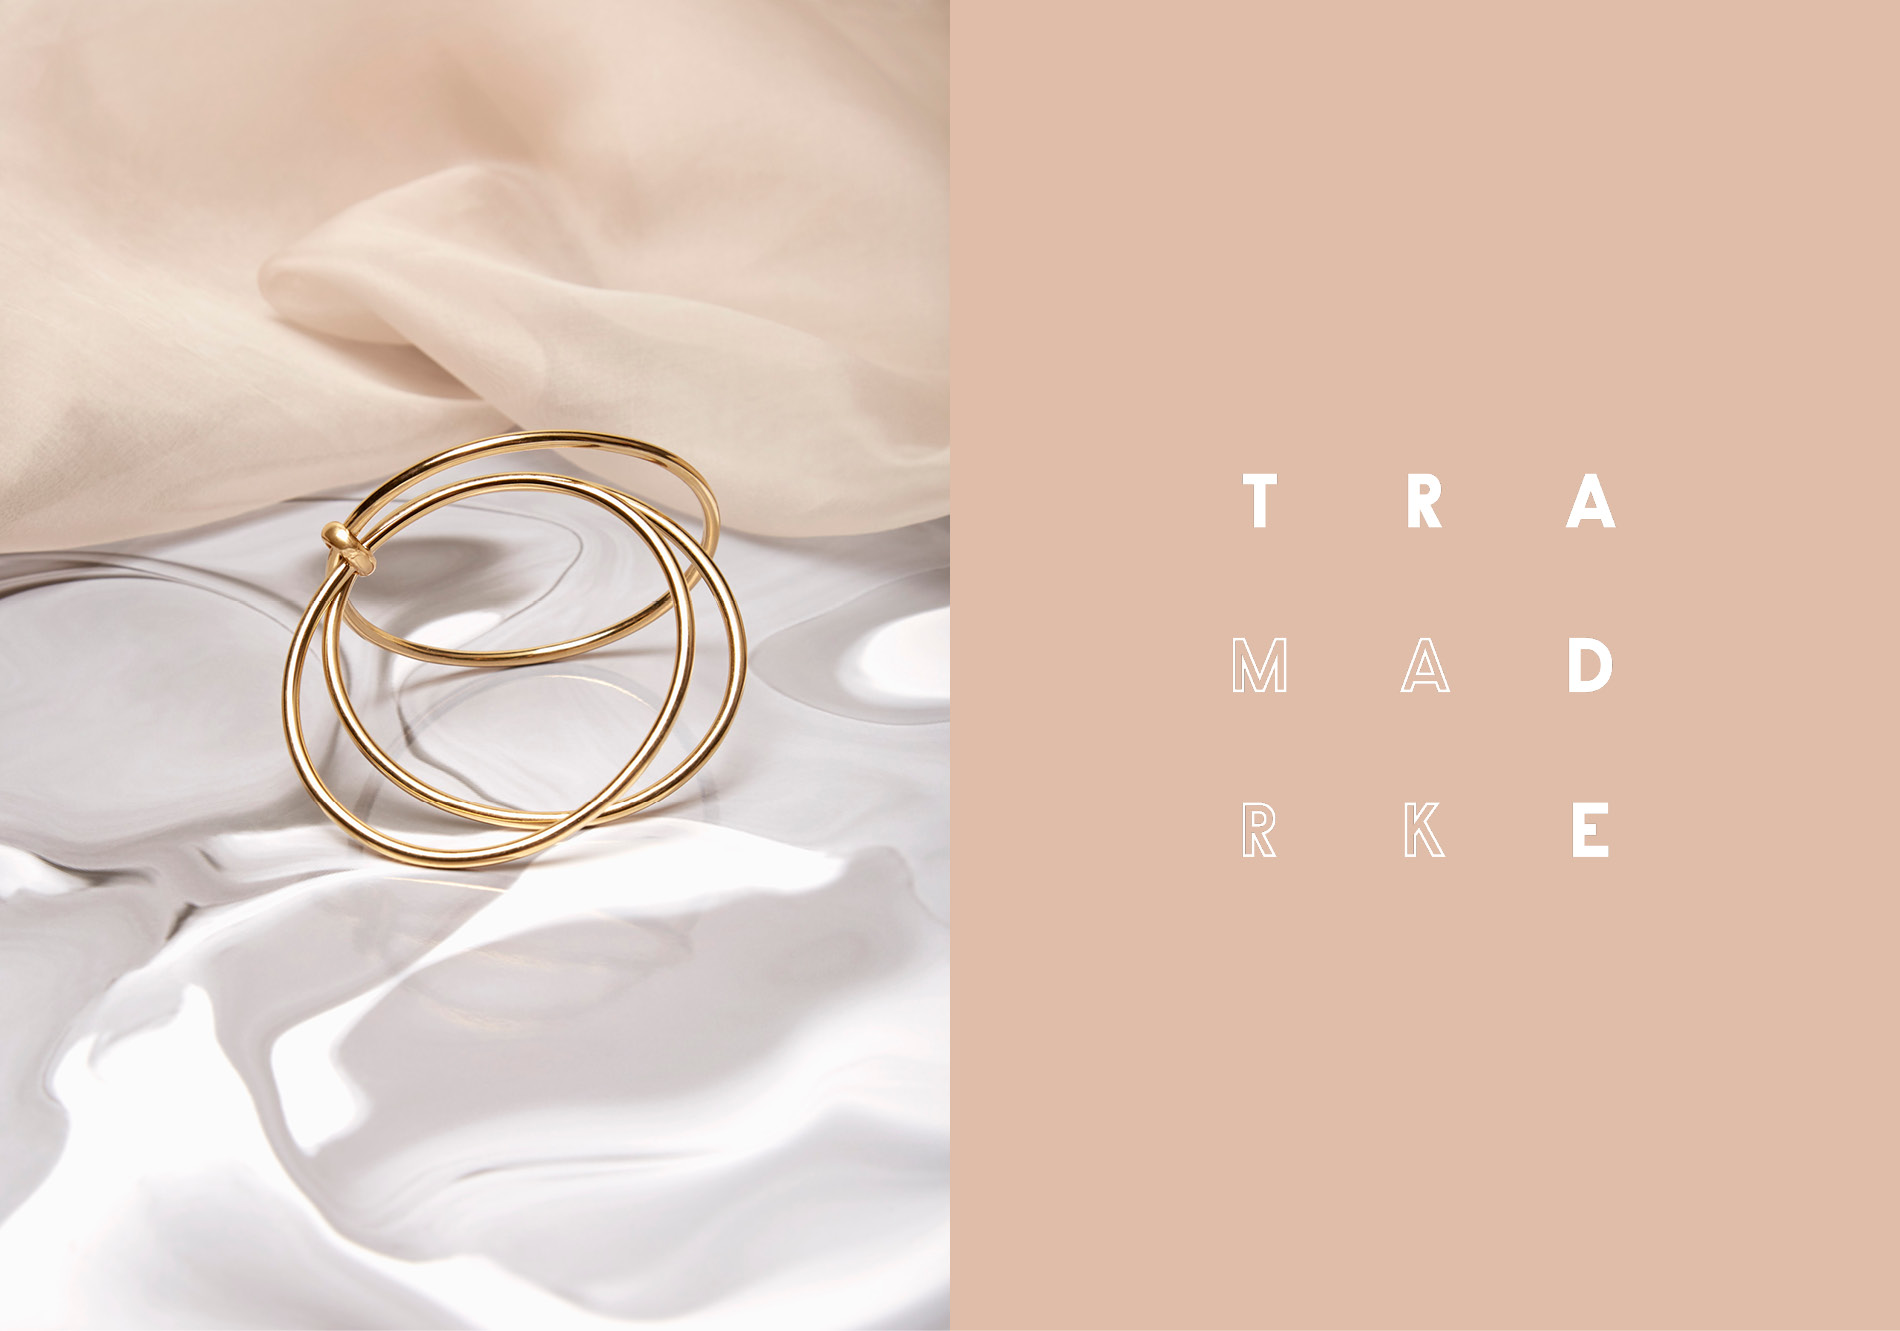 Trademark jewelry photographed on silk background by DTE Studio.